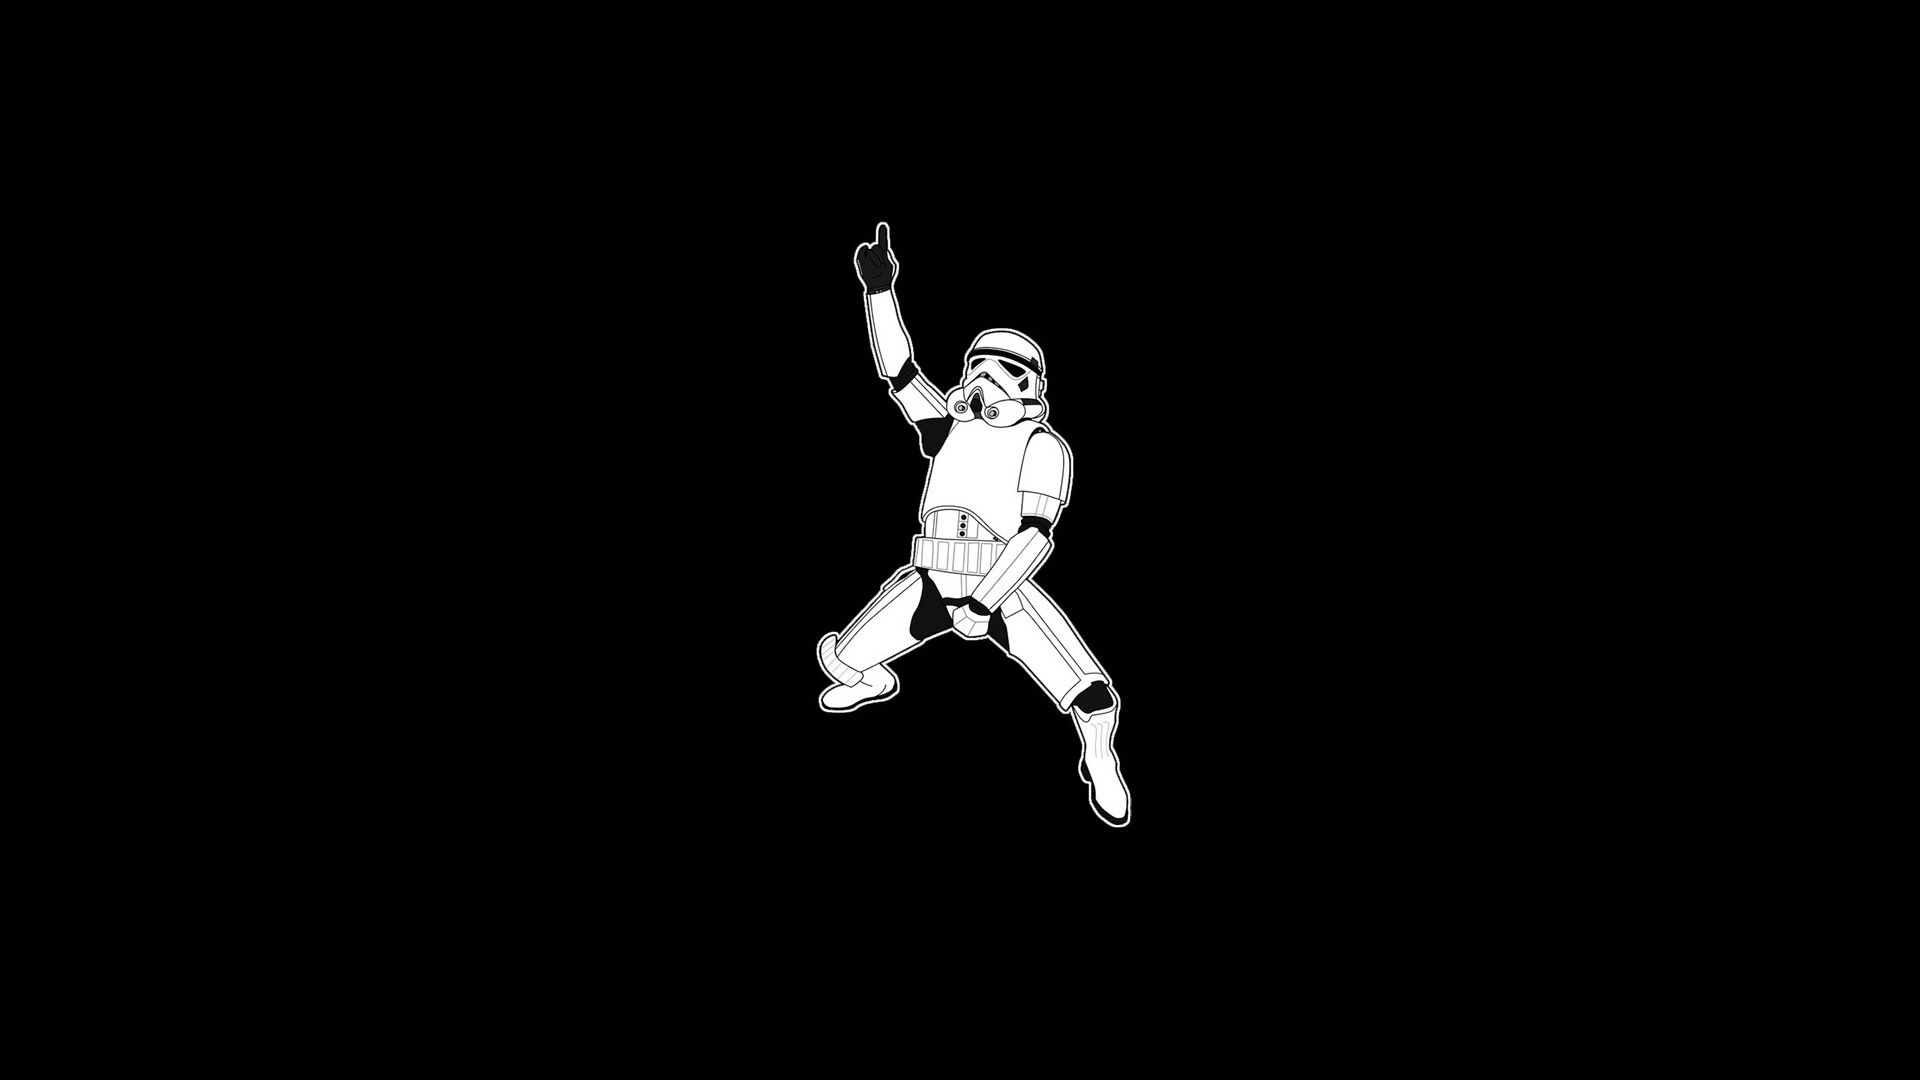 Stormtrooper [1920x1080] Need iPhone 6S Plus Wallpaper